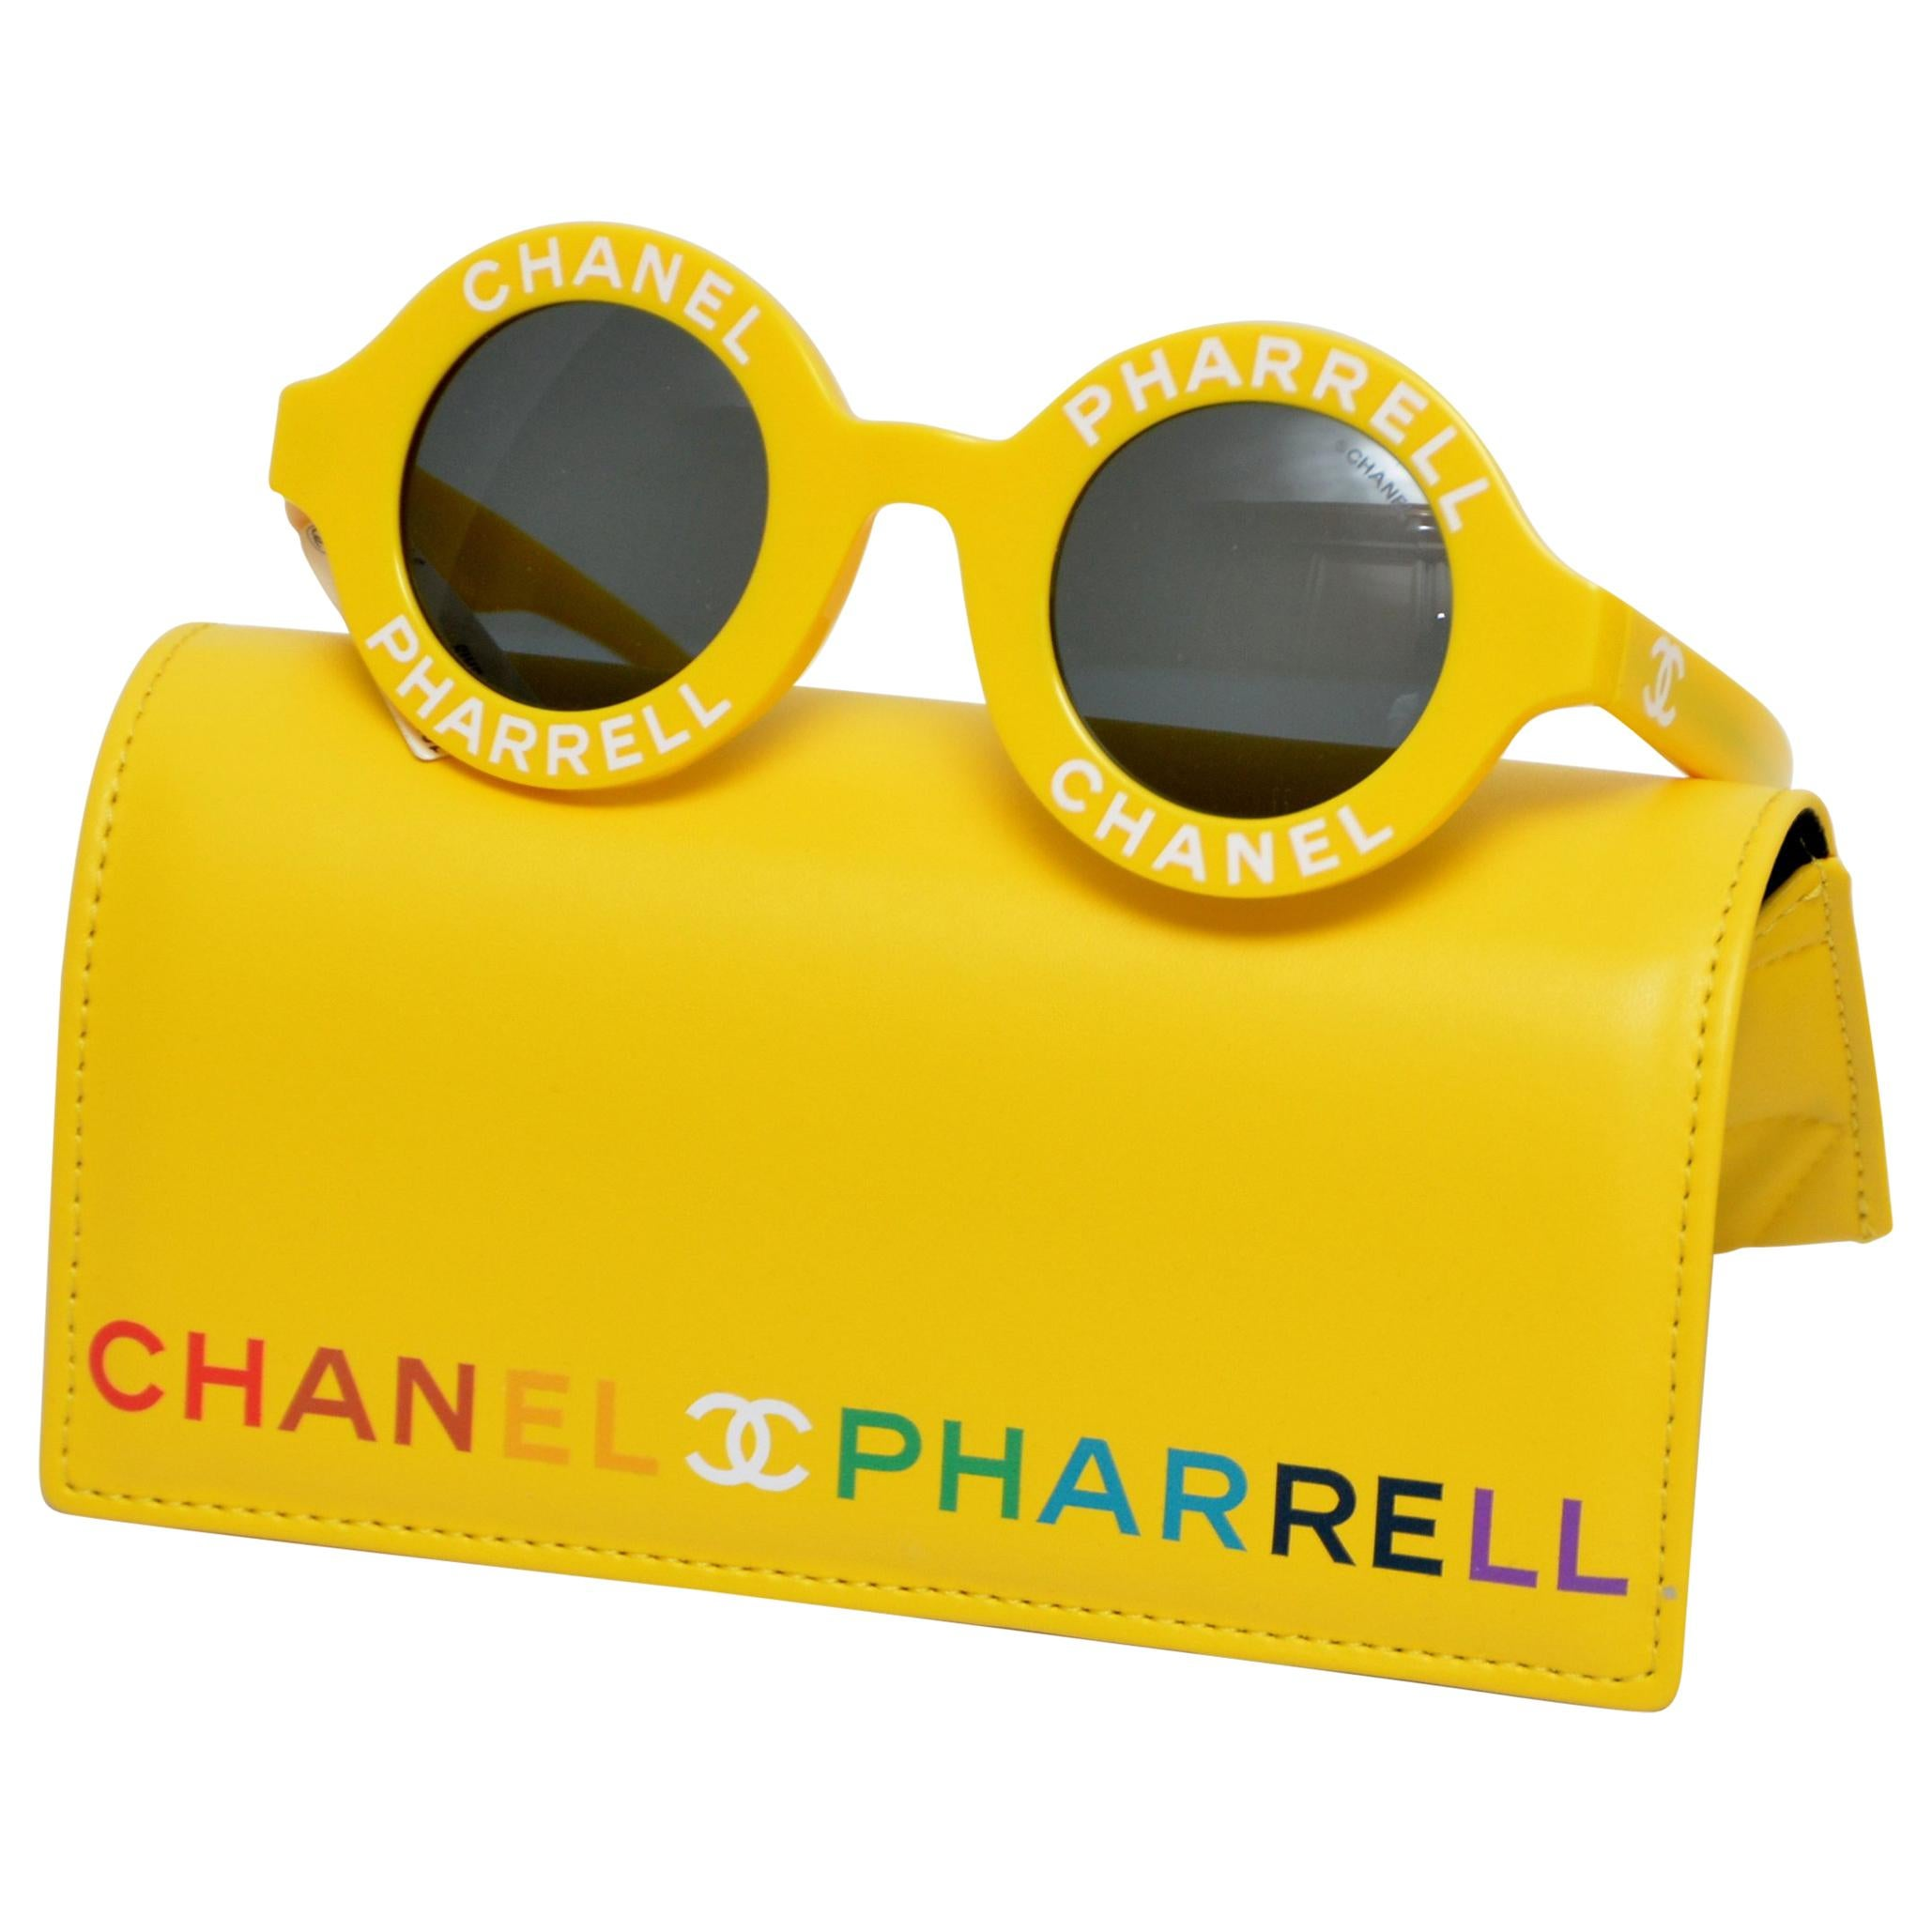 8355cbea713 Vintage Chanel Sunglasses - 86 For Sale at 1stdibs